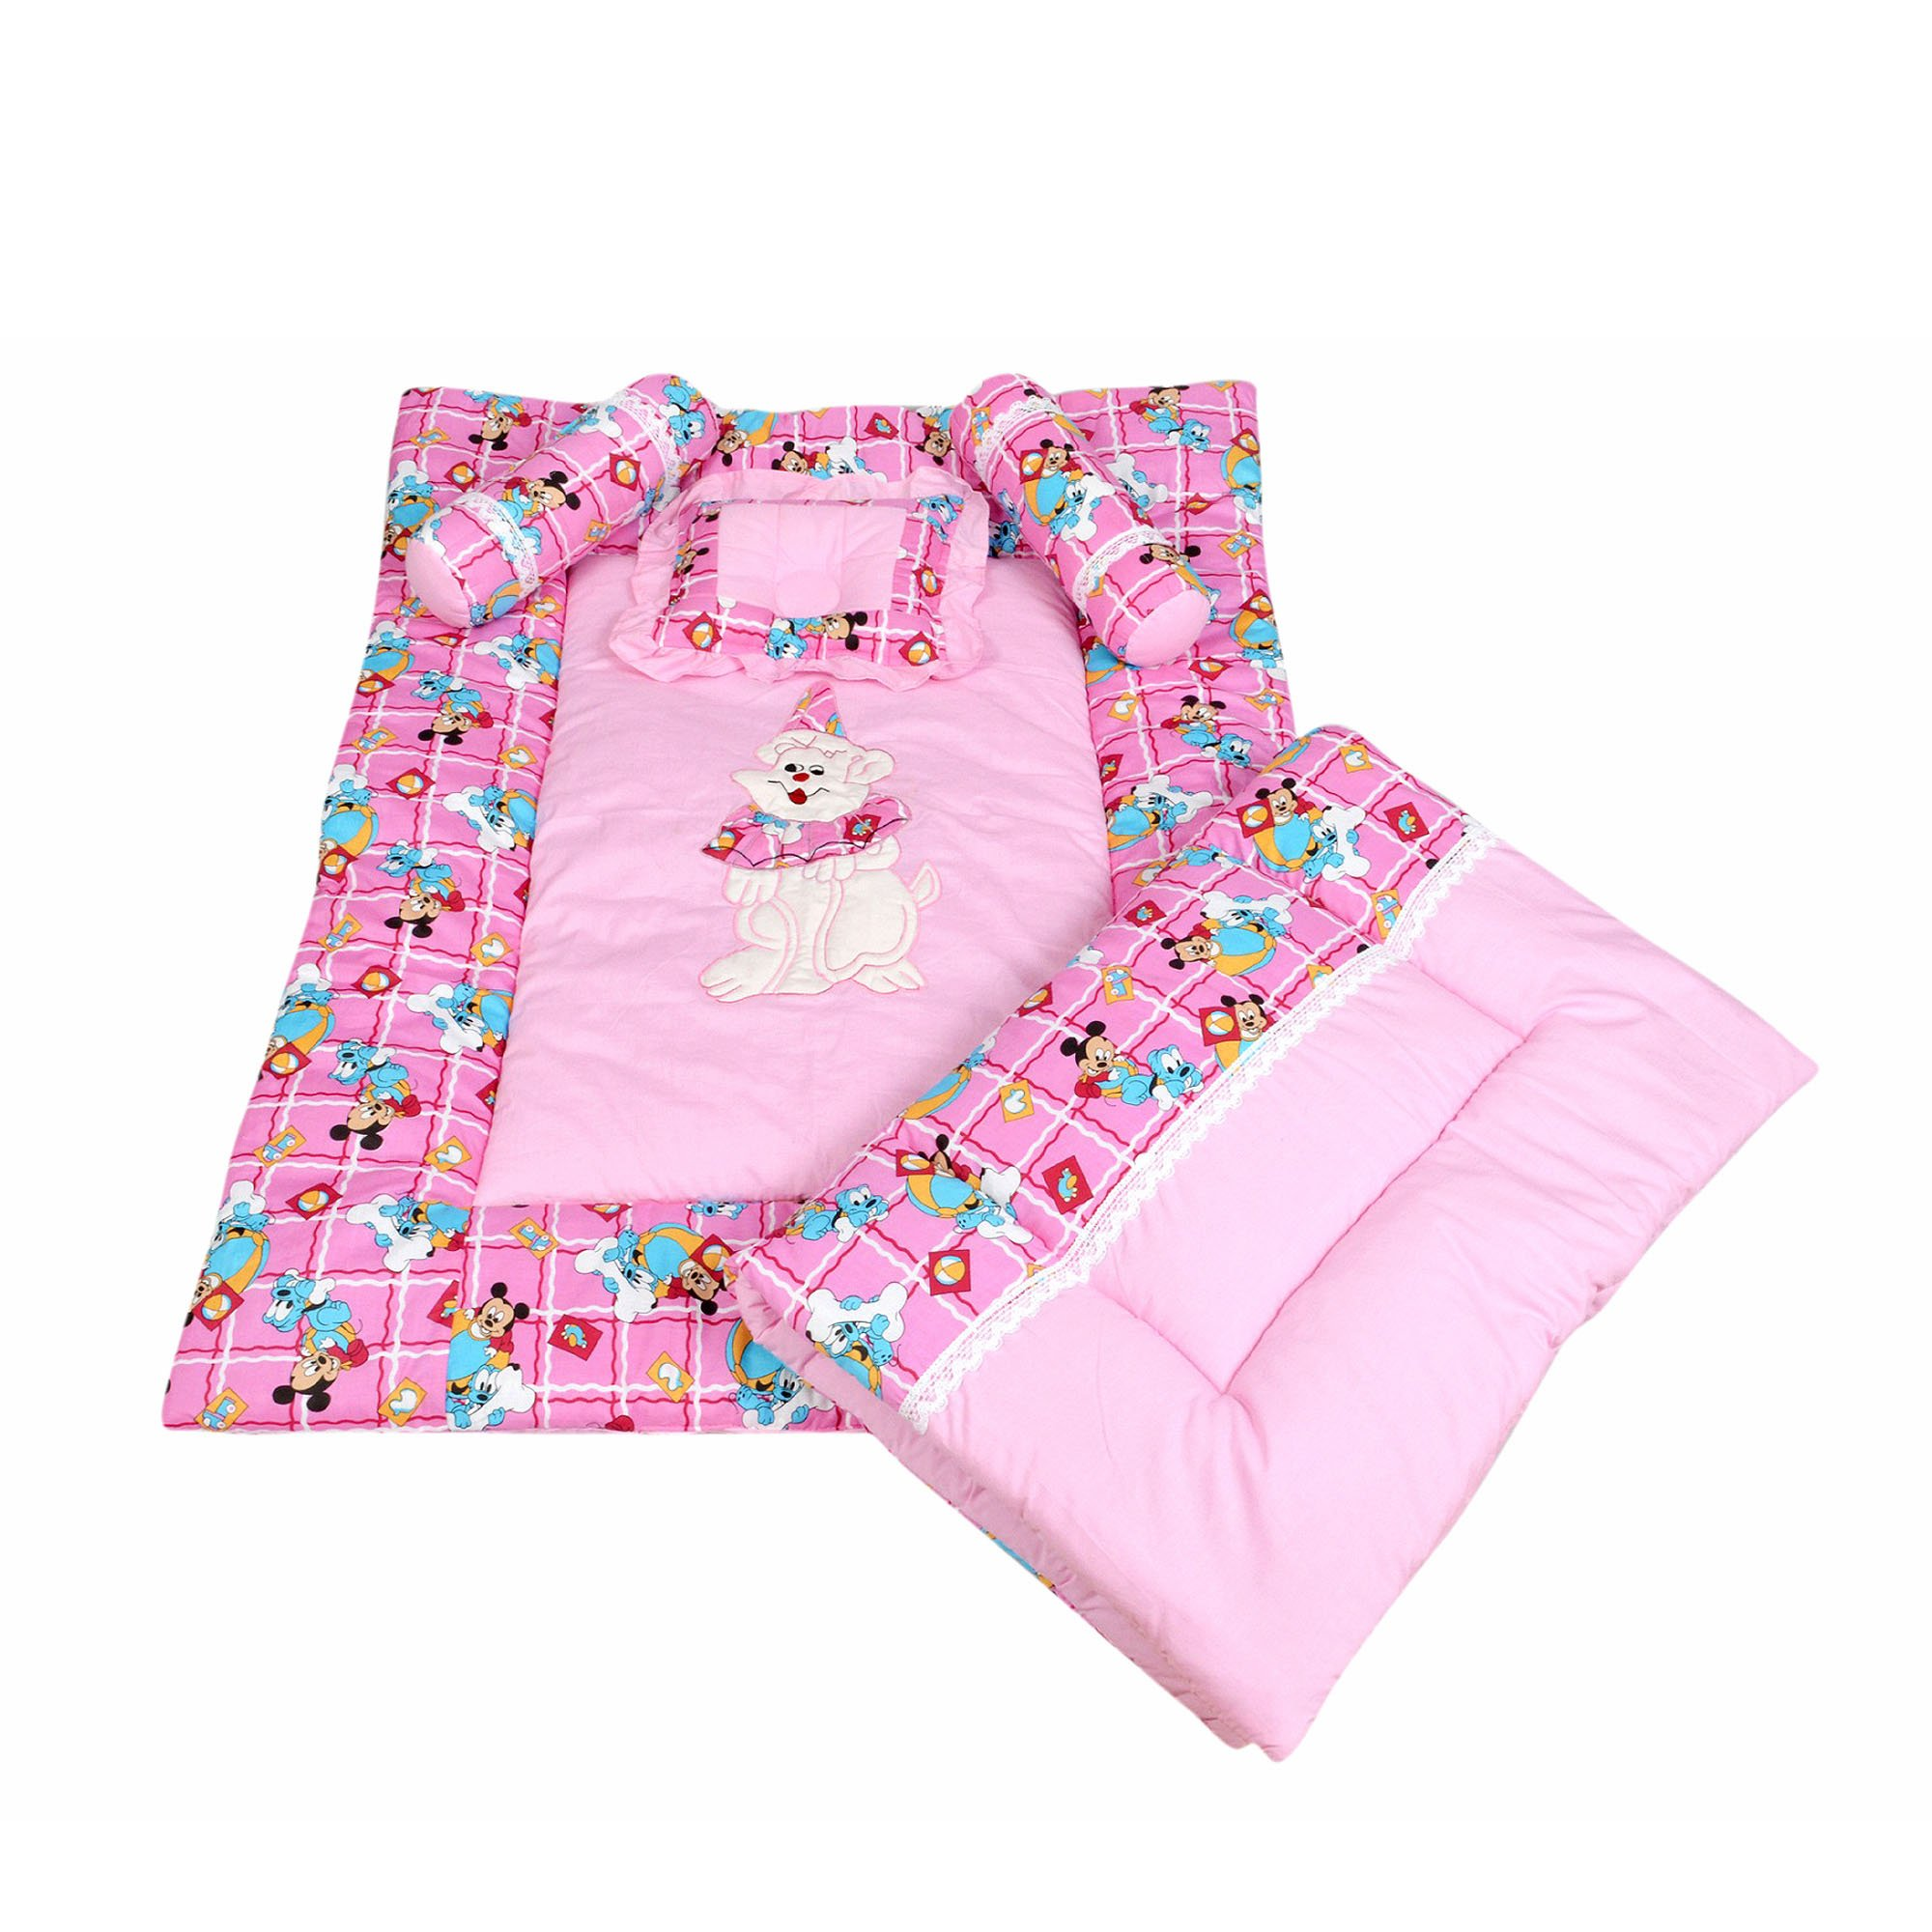 Maple Krafts Pure Cotton Baby Bedding set upto 24 months Pink with Pillow